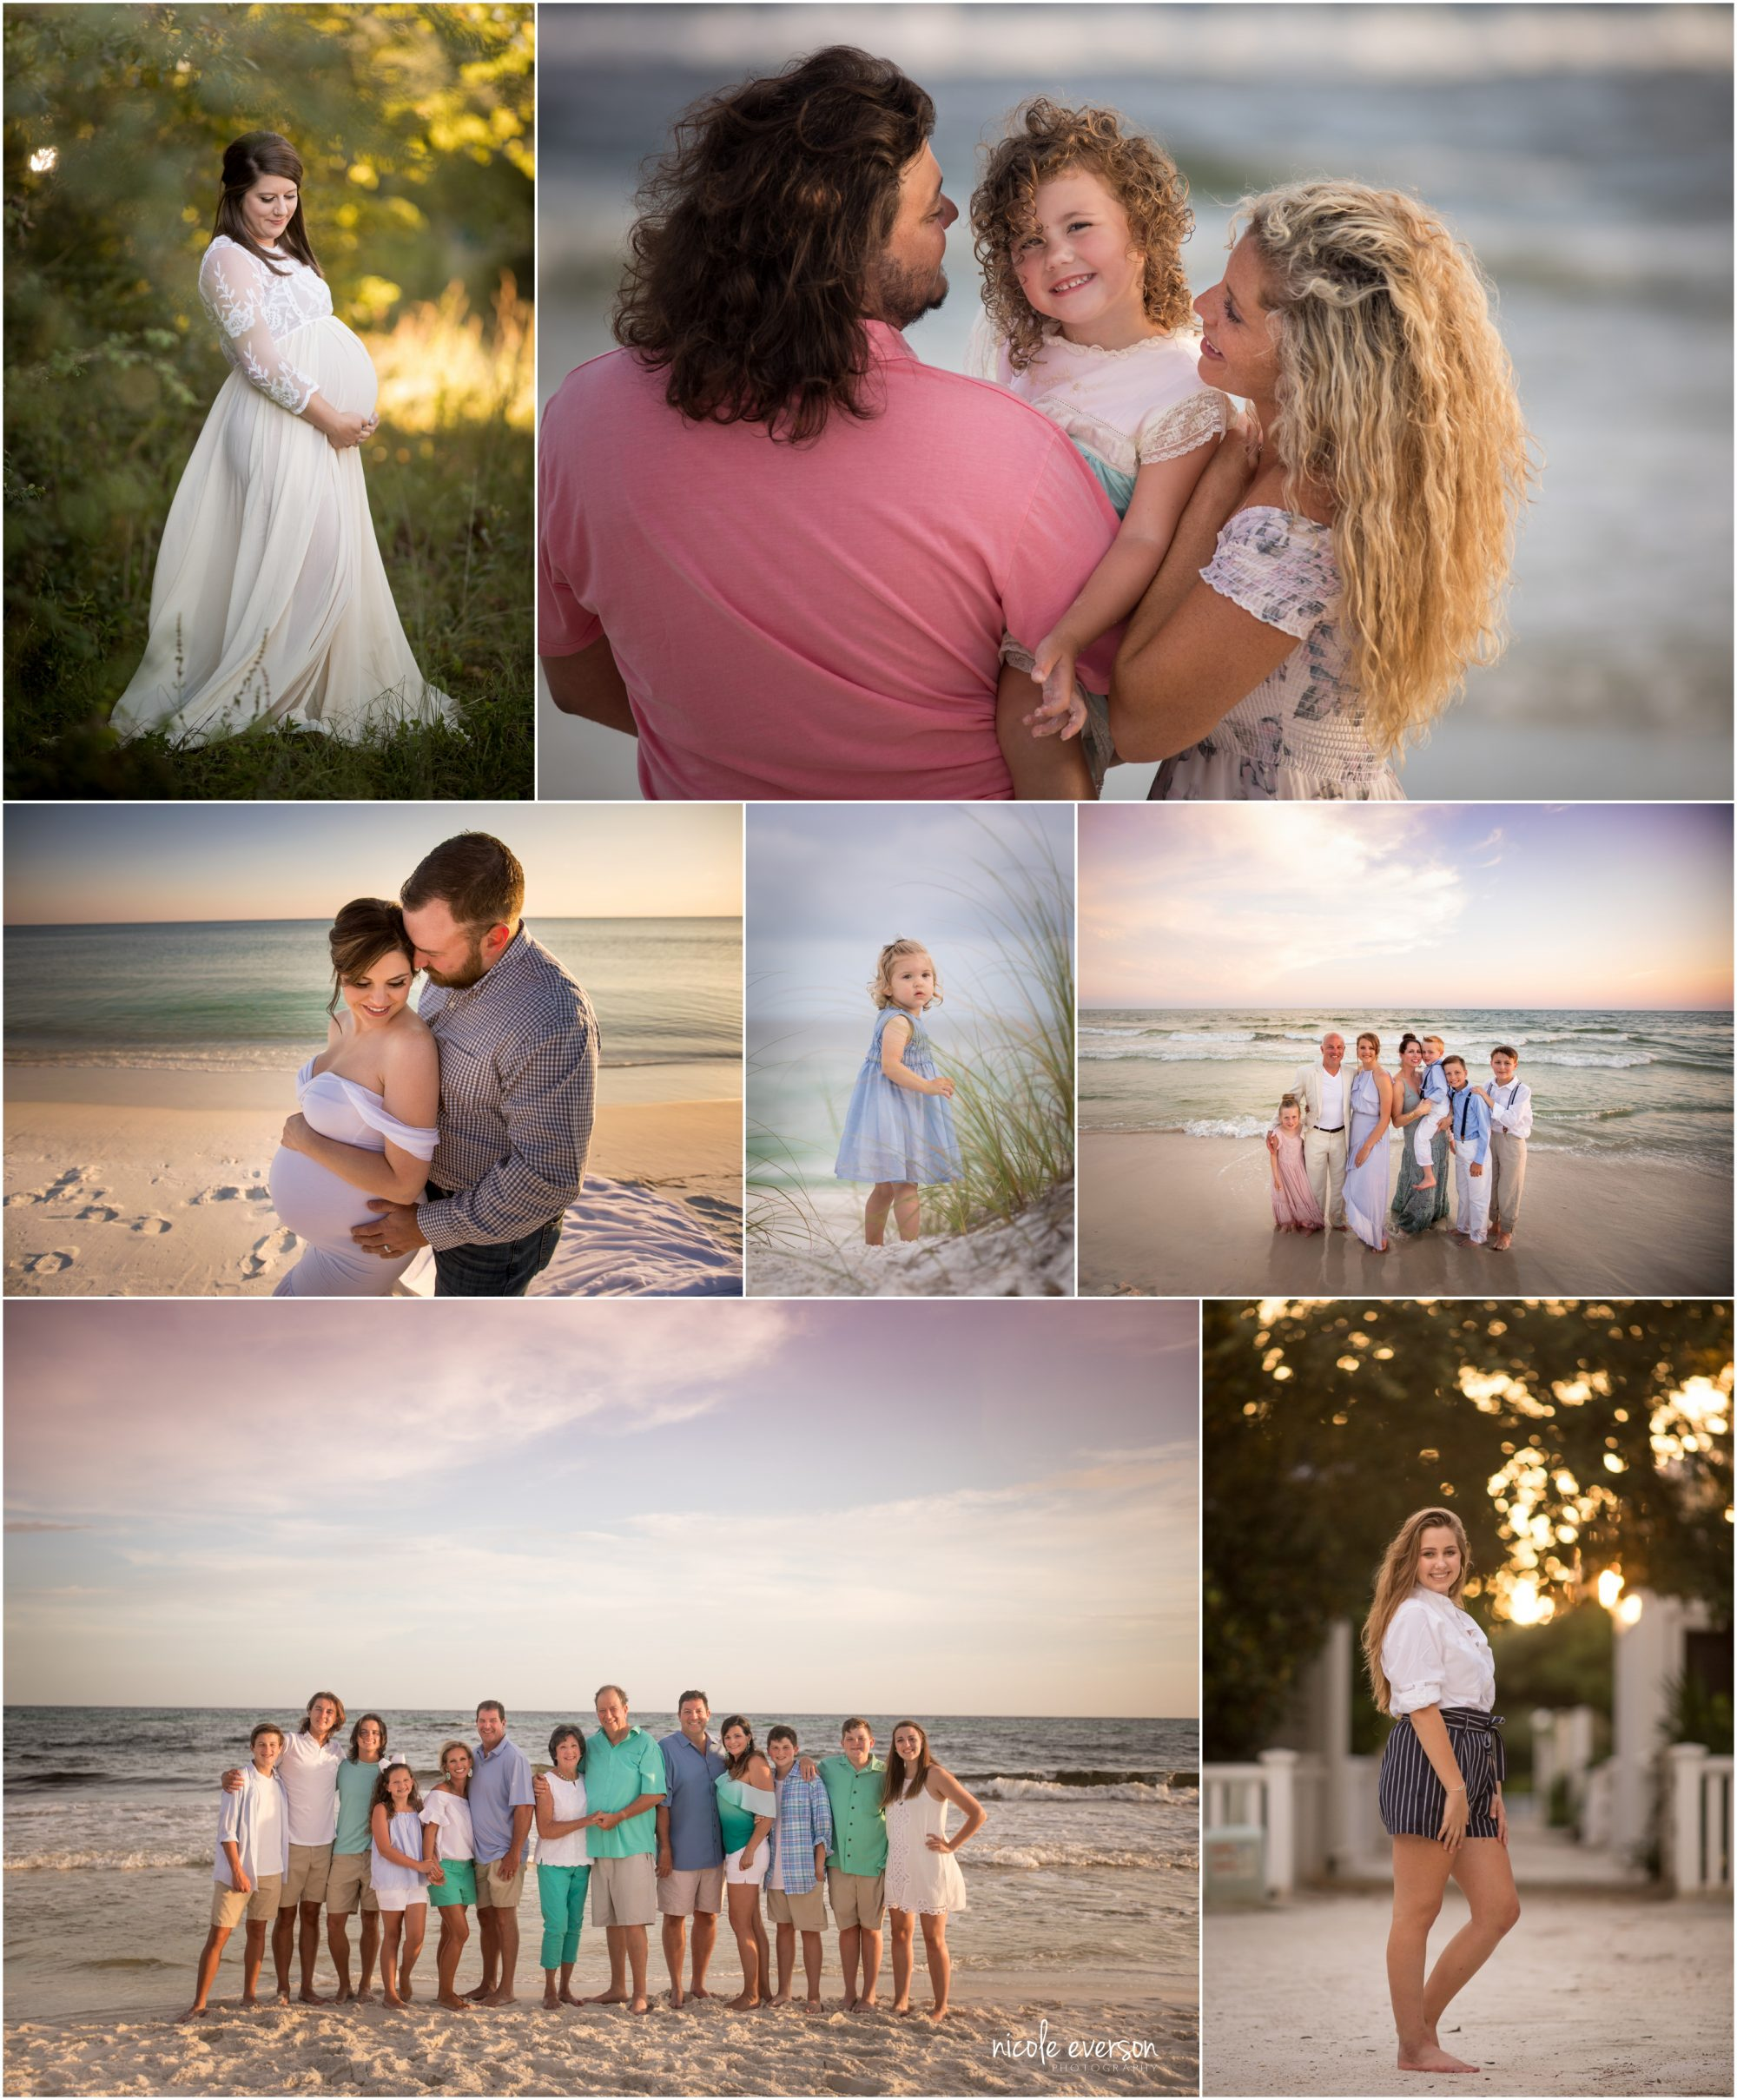 families, and pregnant woman, and a little girl photographed in Grayton beach Florida